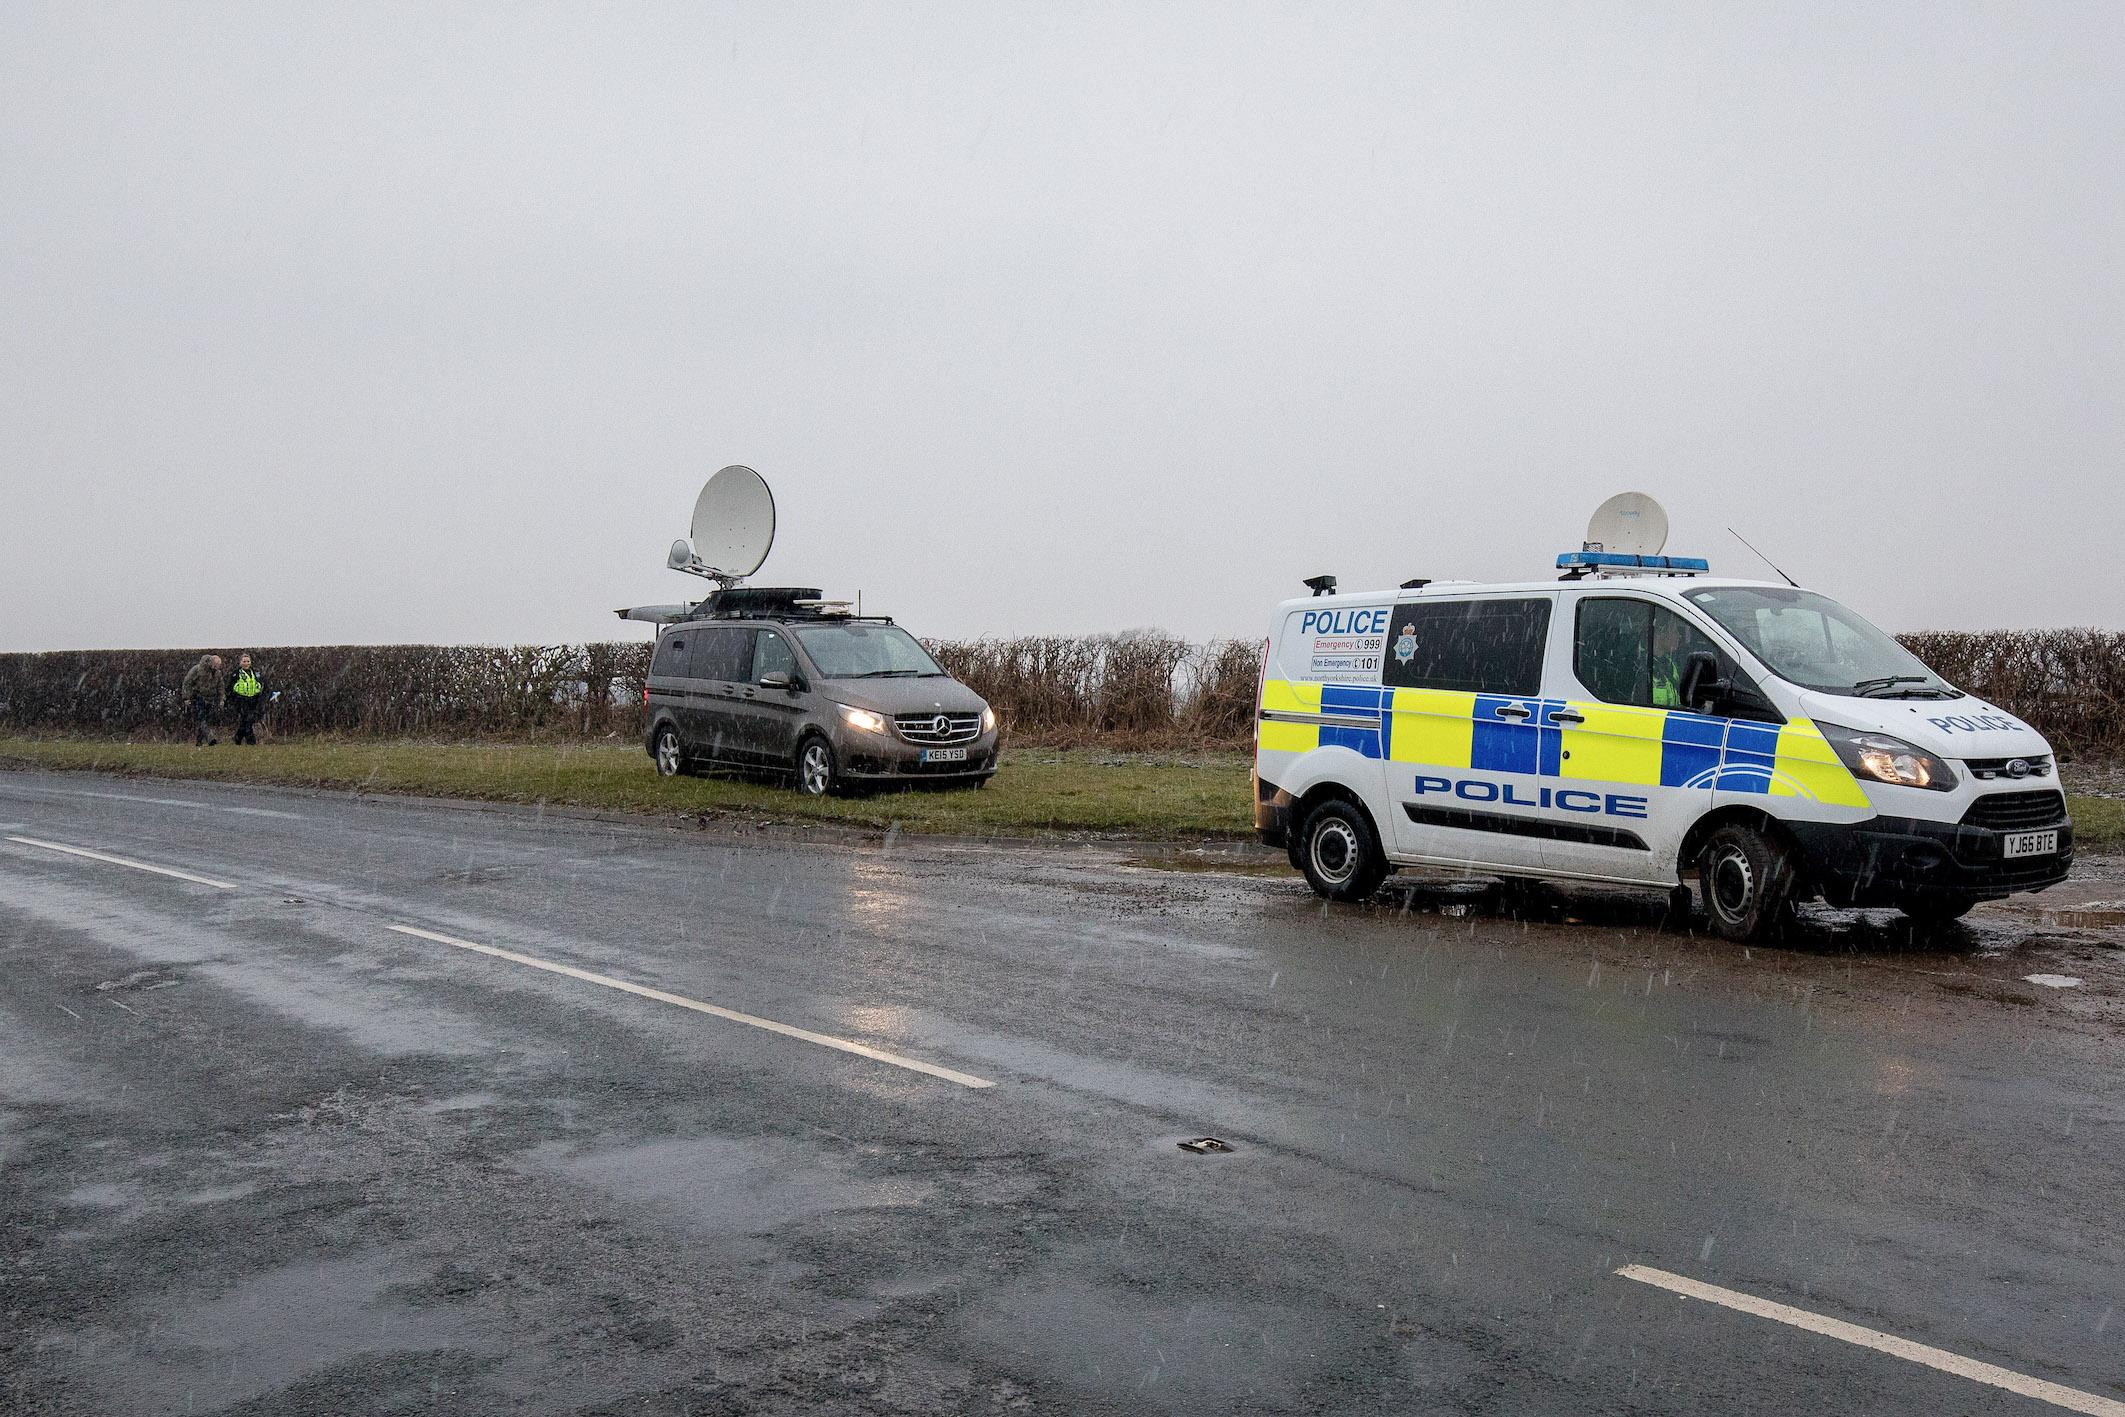 Police at the scene of the crash in North Yorkshire on Thursday morning. (Mercury/Charlotte Graham)